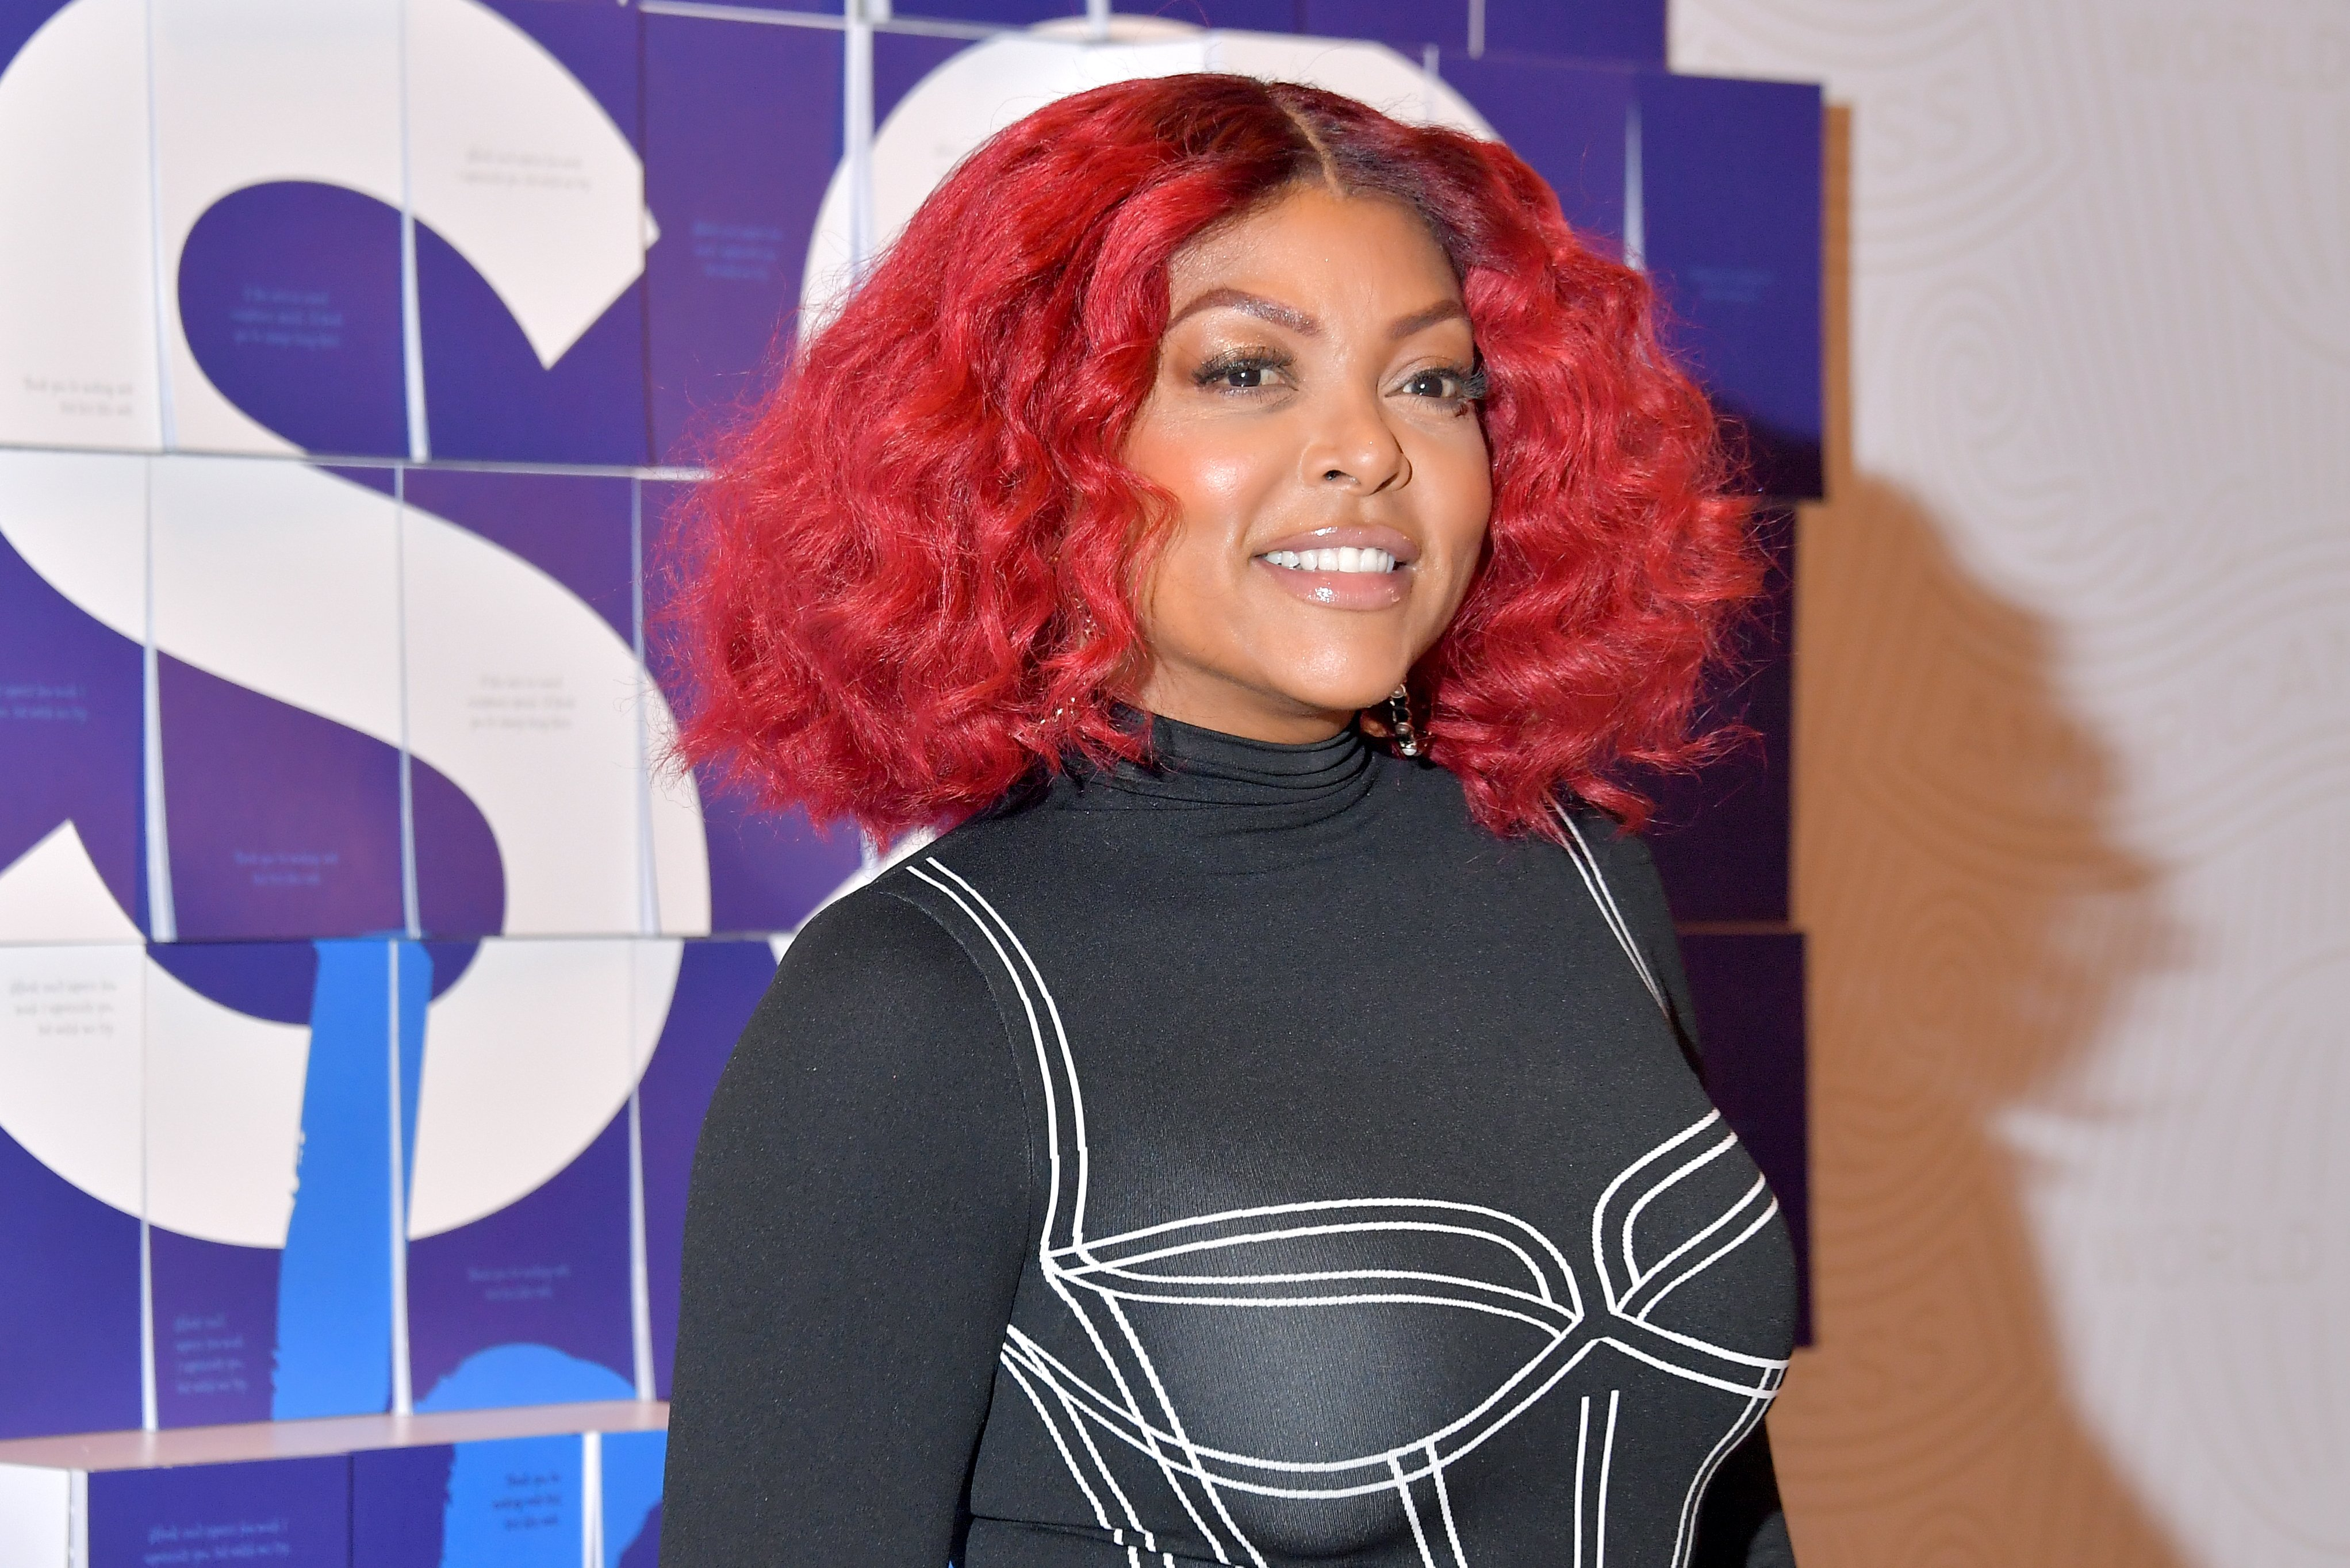 Taraji P. Henson at the #ExpressThanks Pop Up Cafe at Grand Central Station on March 06, 2020 in New York City.   Source: Getty Images